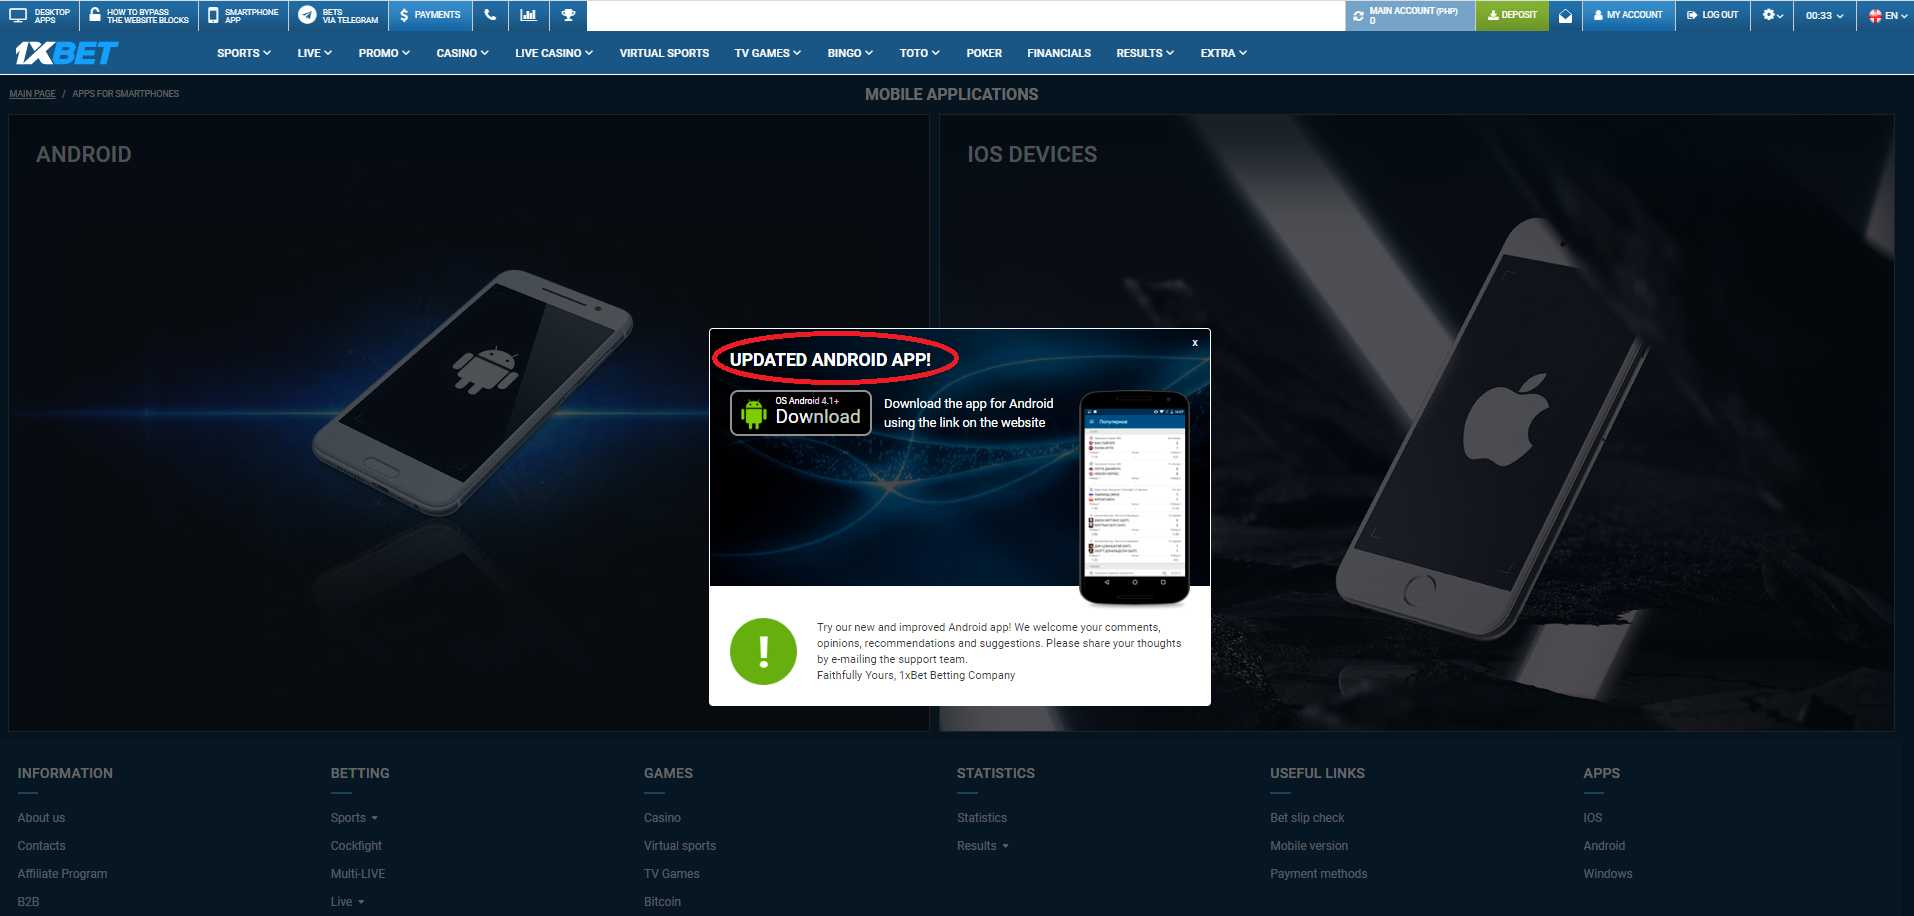 All about mobile login to 1xbet account and possible problems